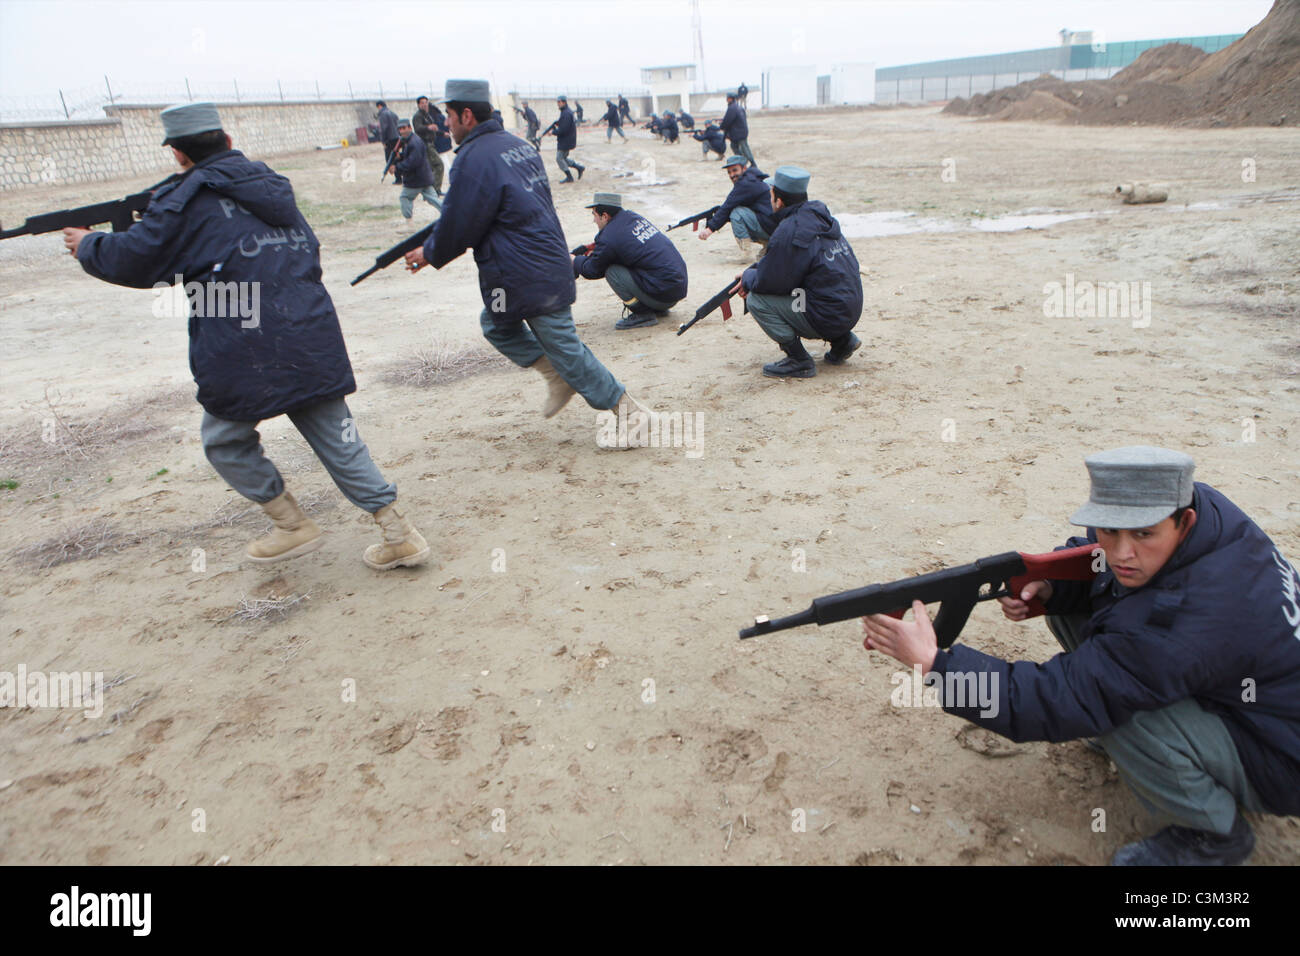 Police training centre in Kunduz by German army - Stock Image